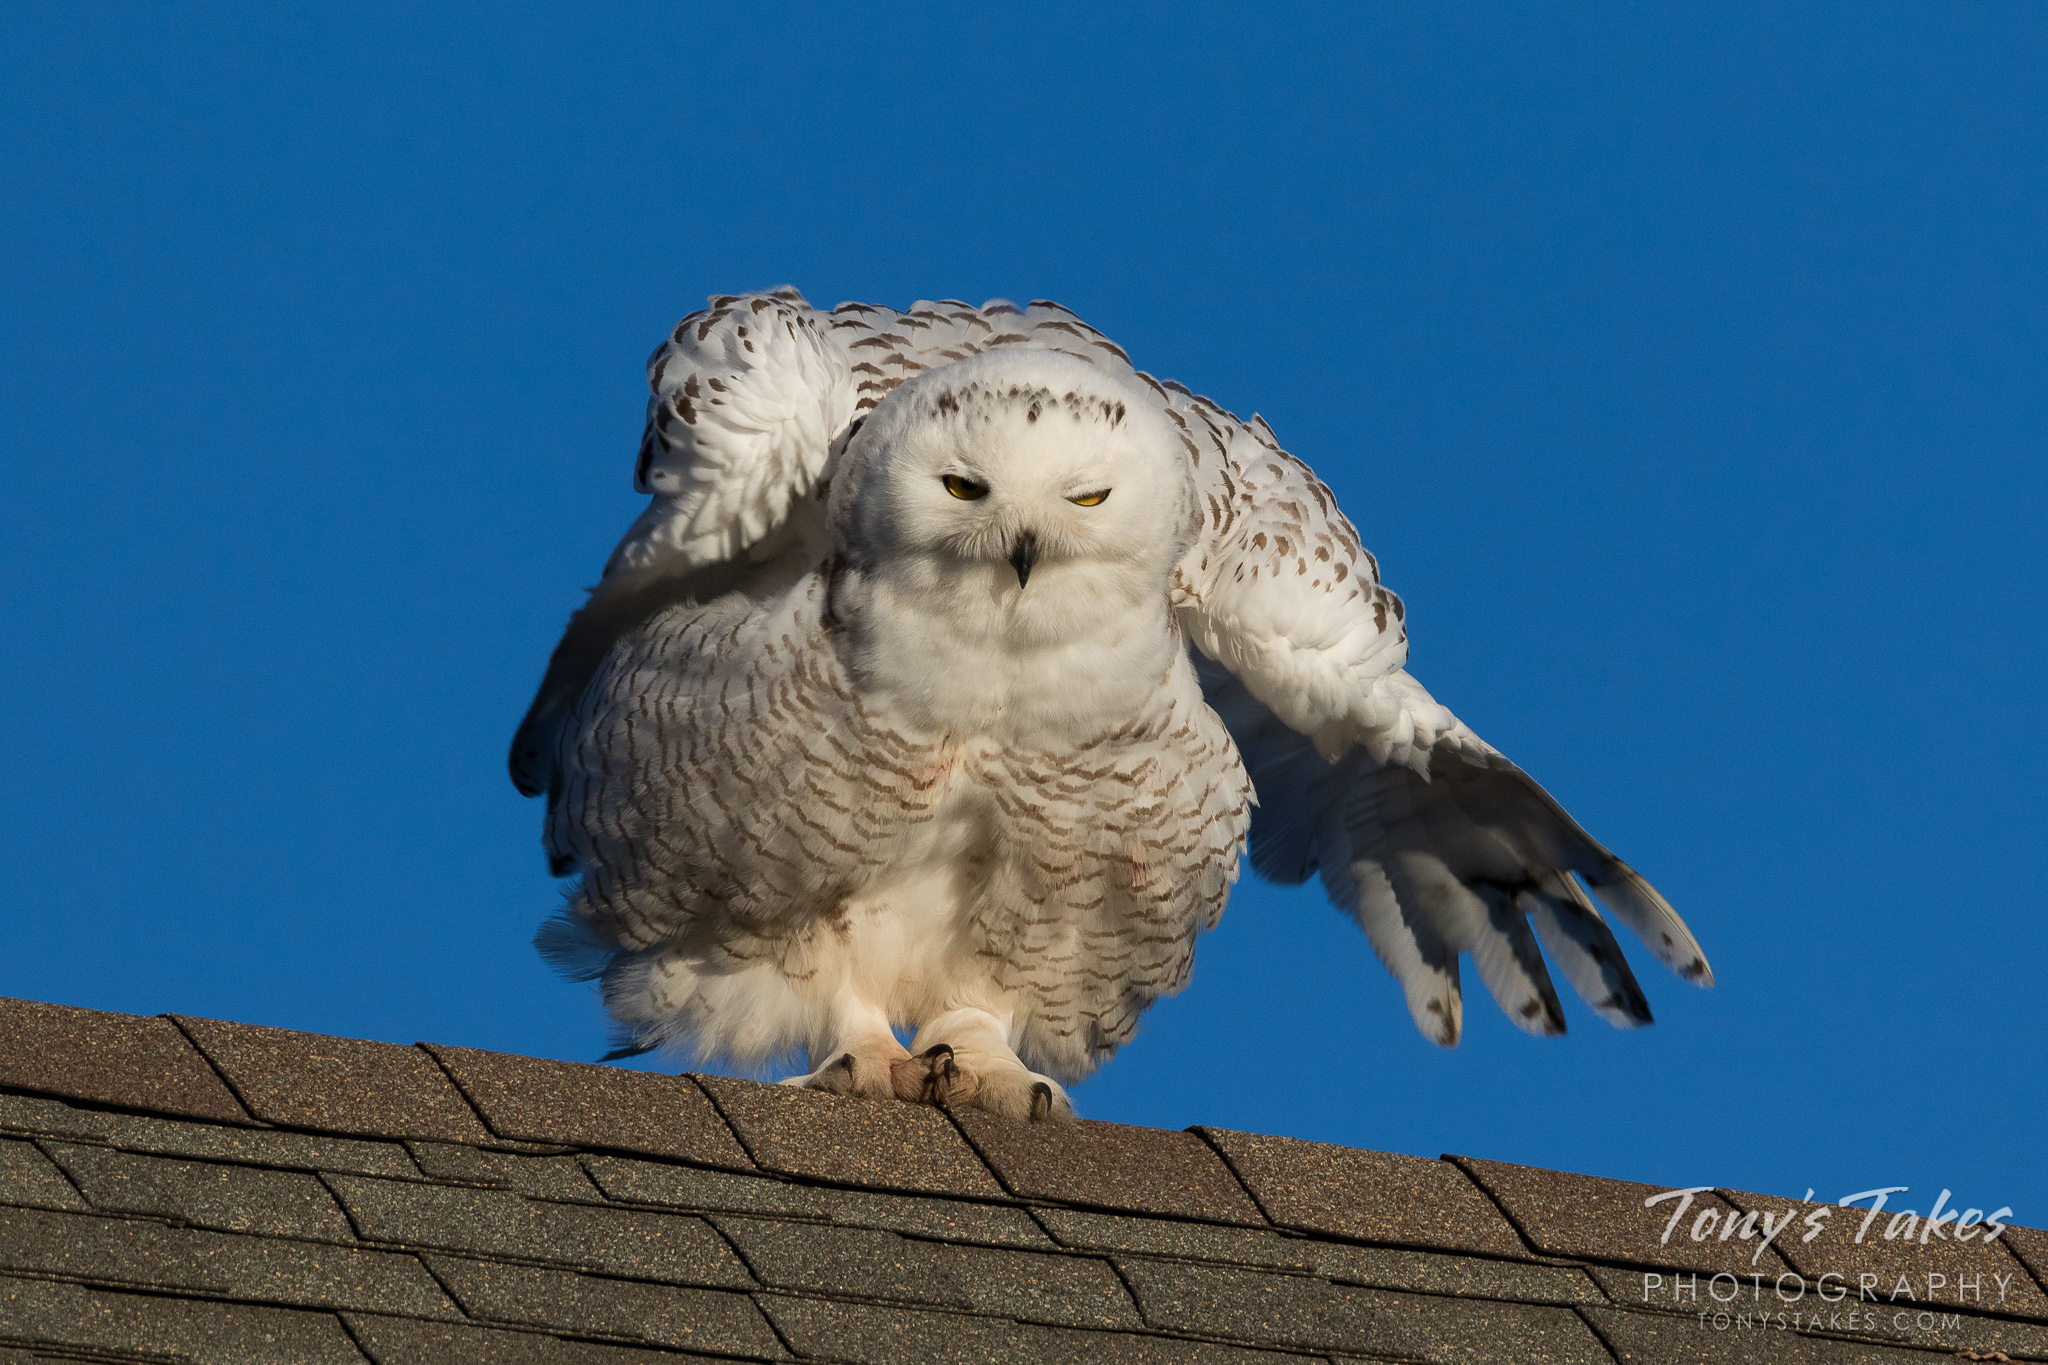 A Snowy Owl fluffs up while perched on a suburban roof northwest of Denver, Colorado.  (© Tony's Takes)